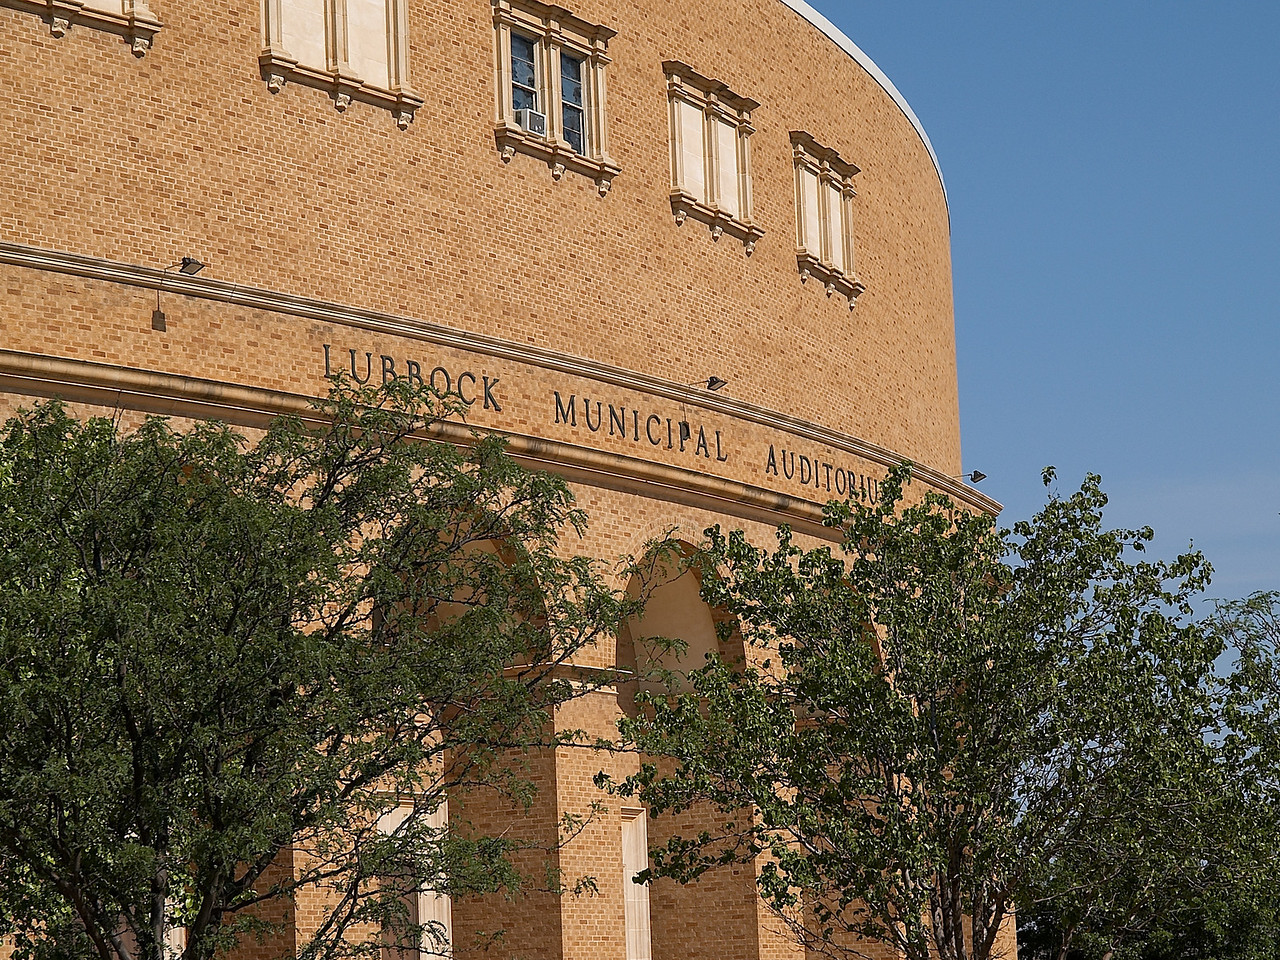 Lubbock Municipal Auditorium- where the basketball team played prior to the building of United Spirit Arena